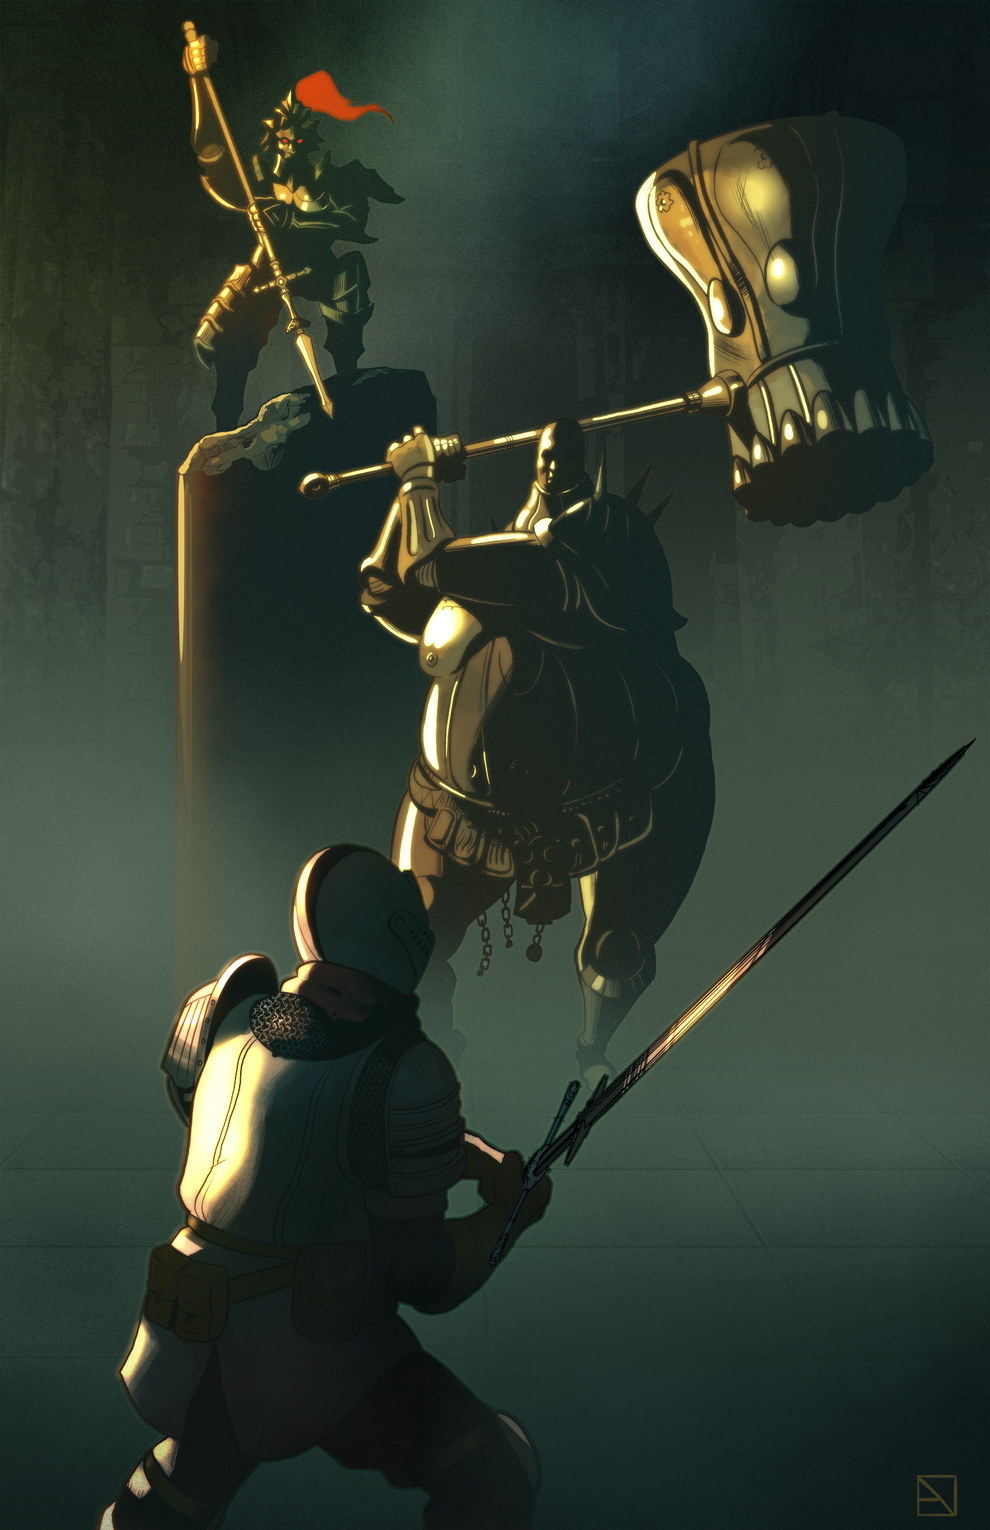 ornstein_and_smough_by_phobos_romulus-dbpbjh2.png